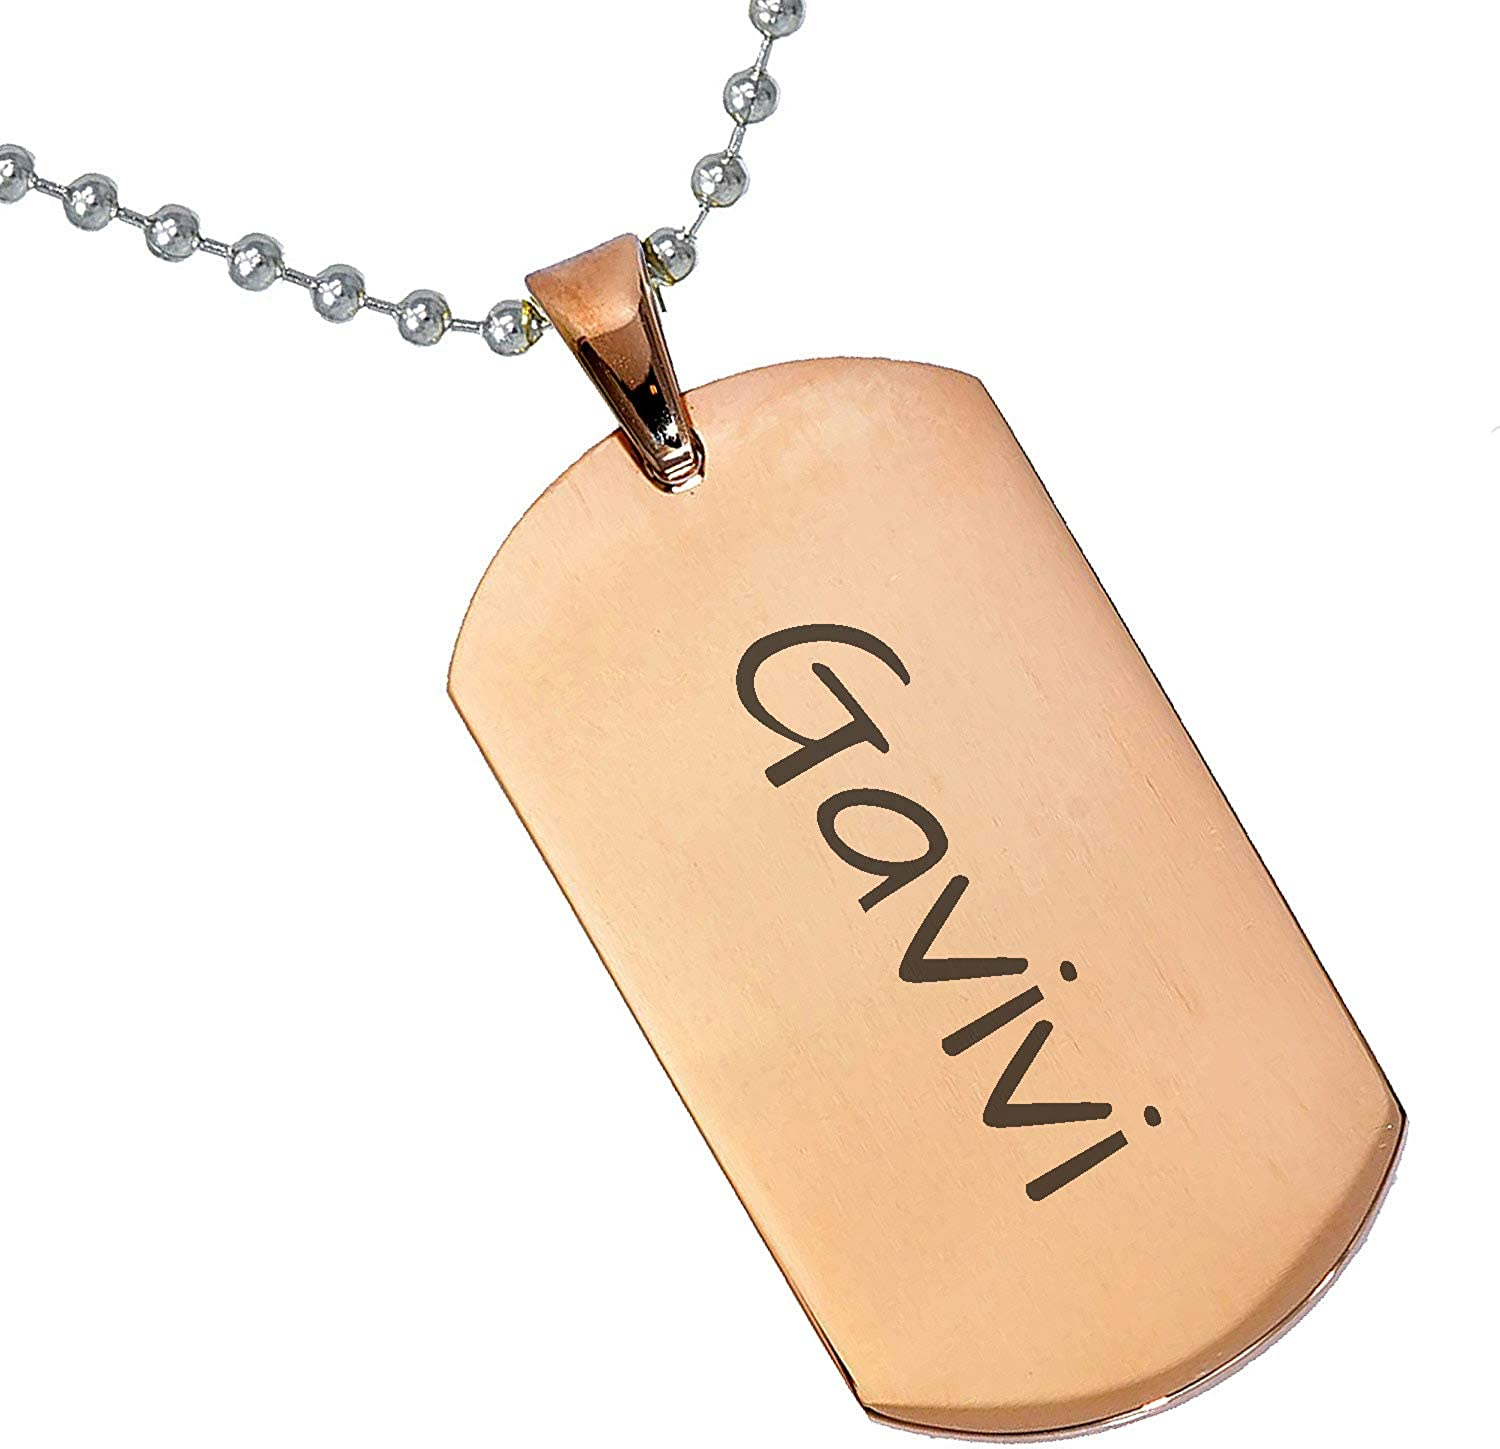 Stainless Steel Silver Gold Black Rose Gold Color Baby Name Gavivi Engraved Personalized Gifts For Son Daughter Boyfriend Girlfriend Initial Customizable Pendant Necklace Dog Tags 24 Ball Chain